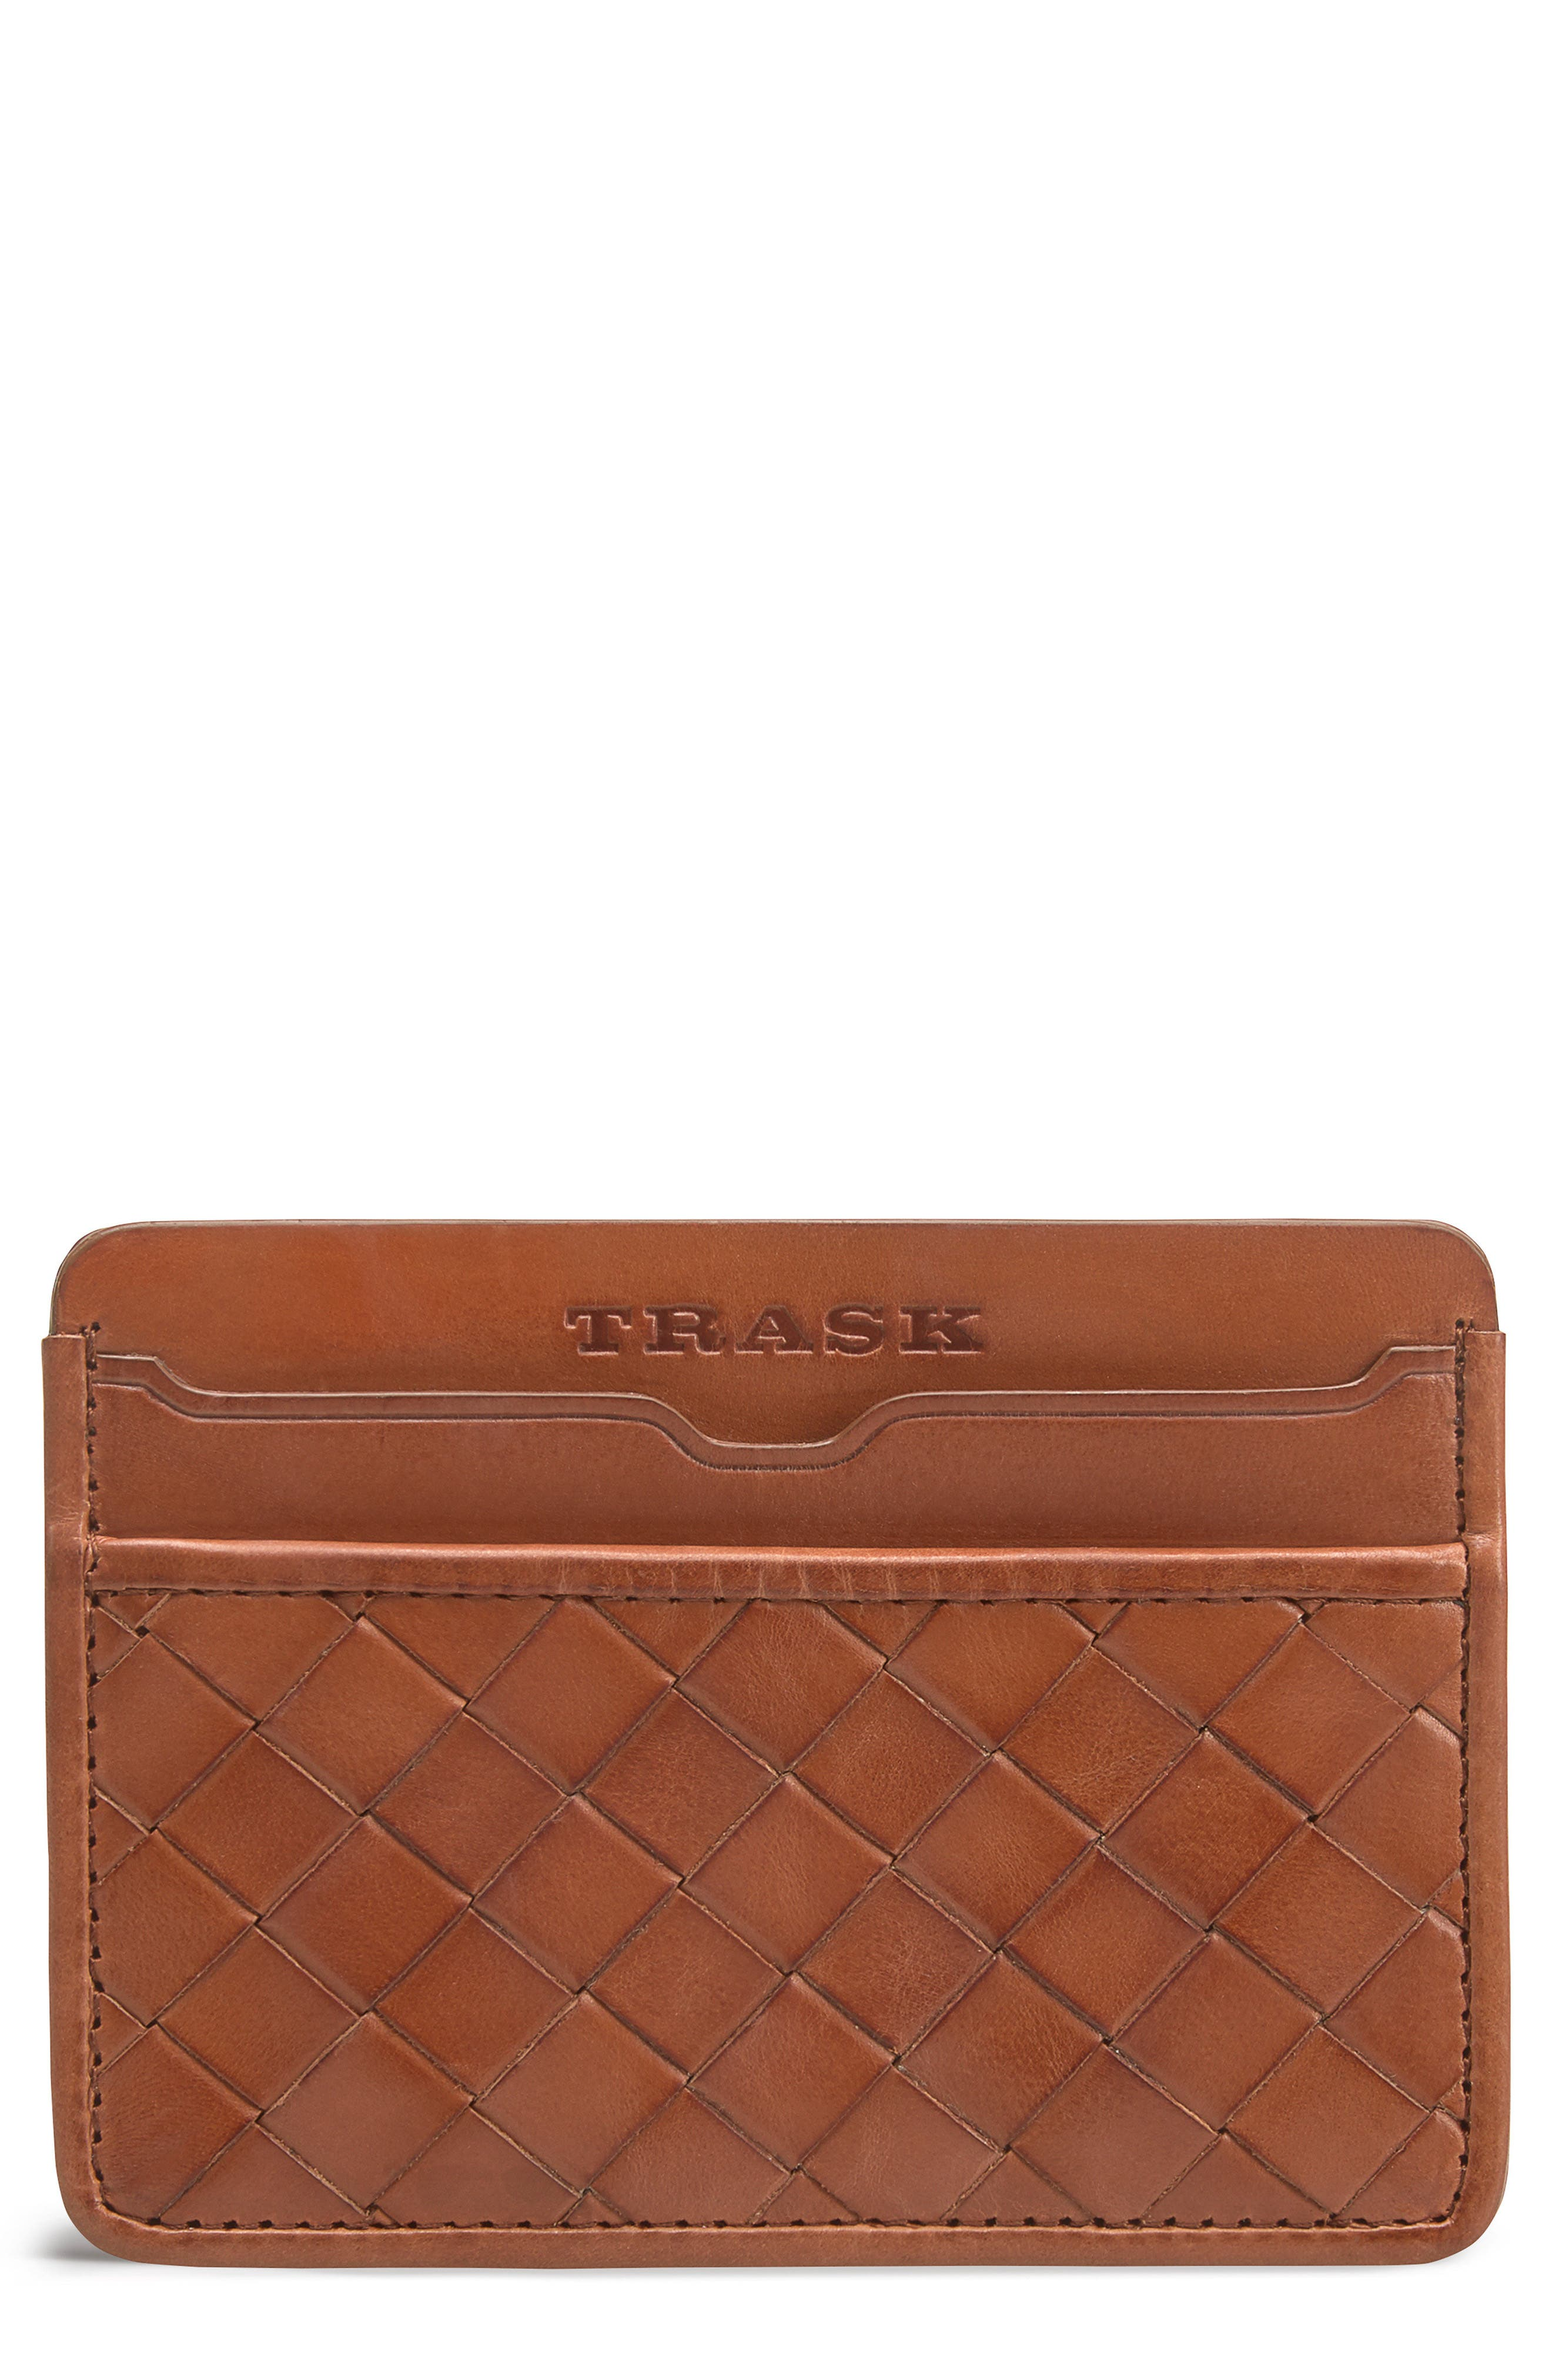 Main Image - Trask Woven Leather Card Case